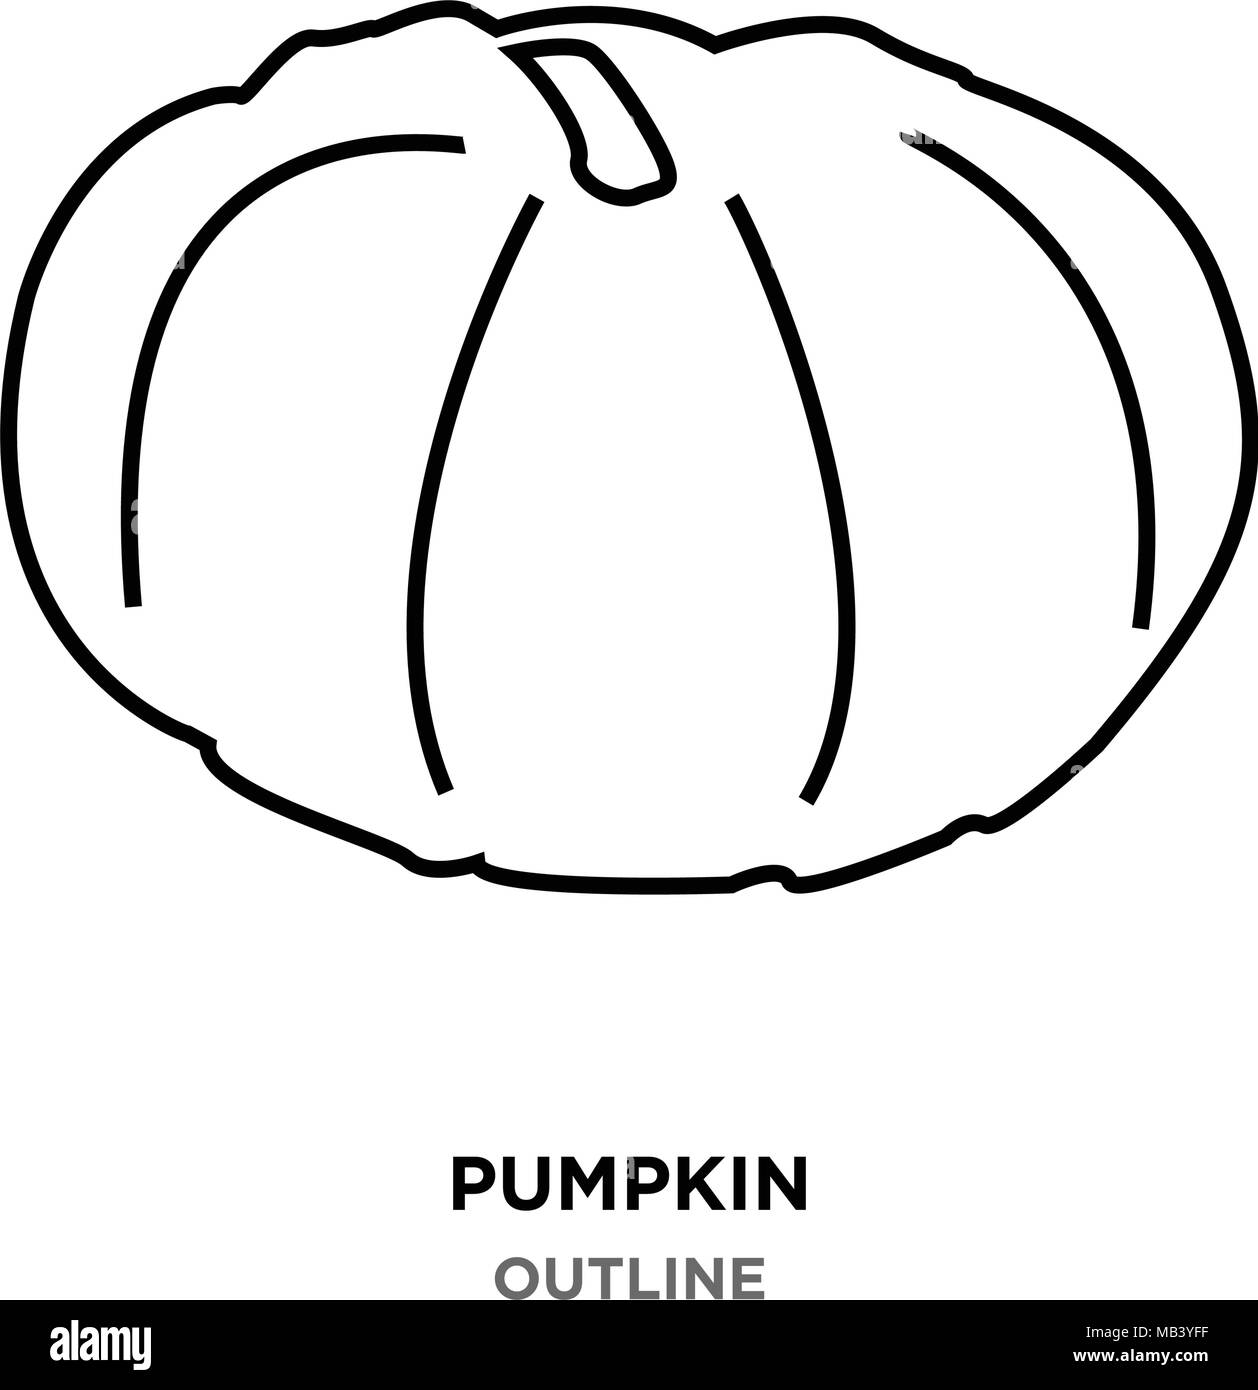 Pumpkin Outline Images On White Background Stock Vector Art